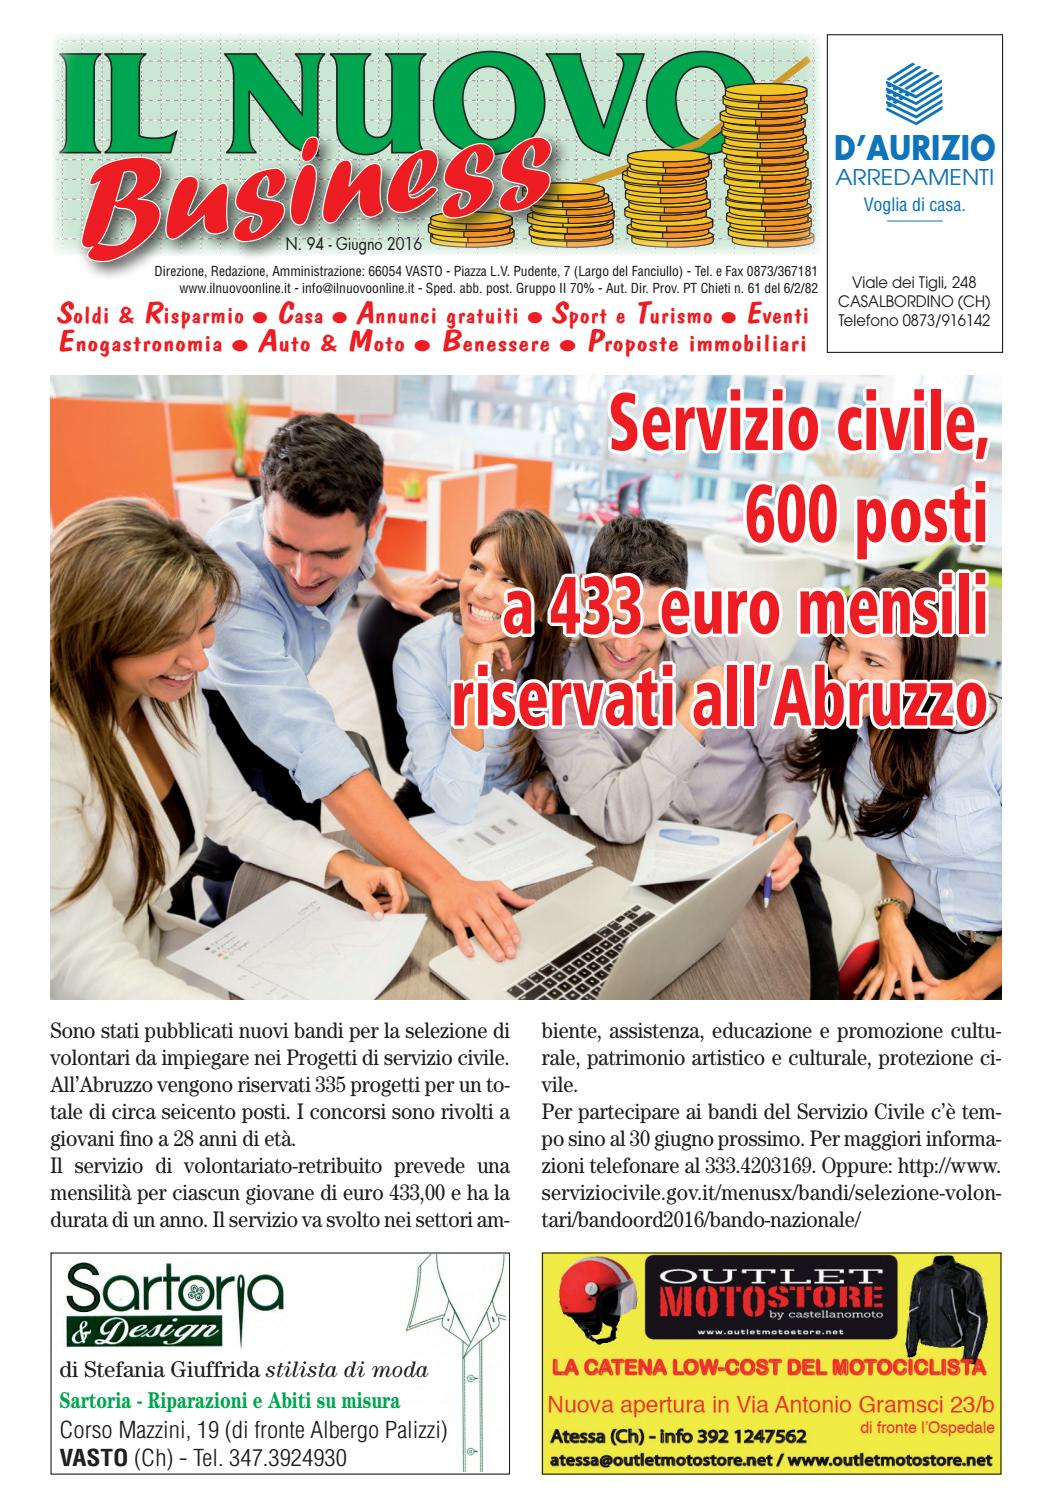 Business giugno 2016 by nicolangelo gualtieri issuu for Gualtieri arredamenti